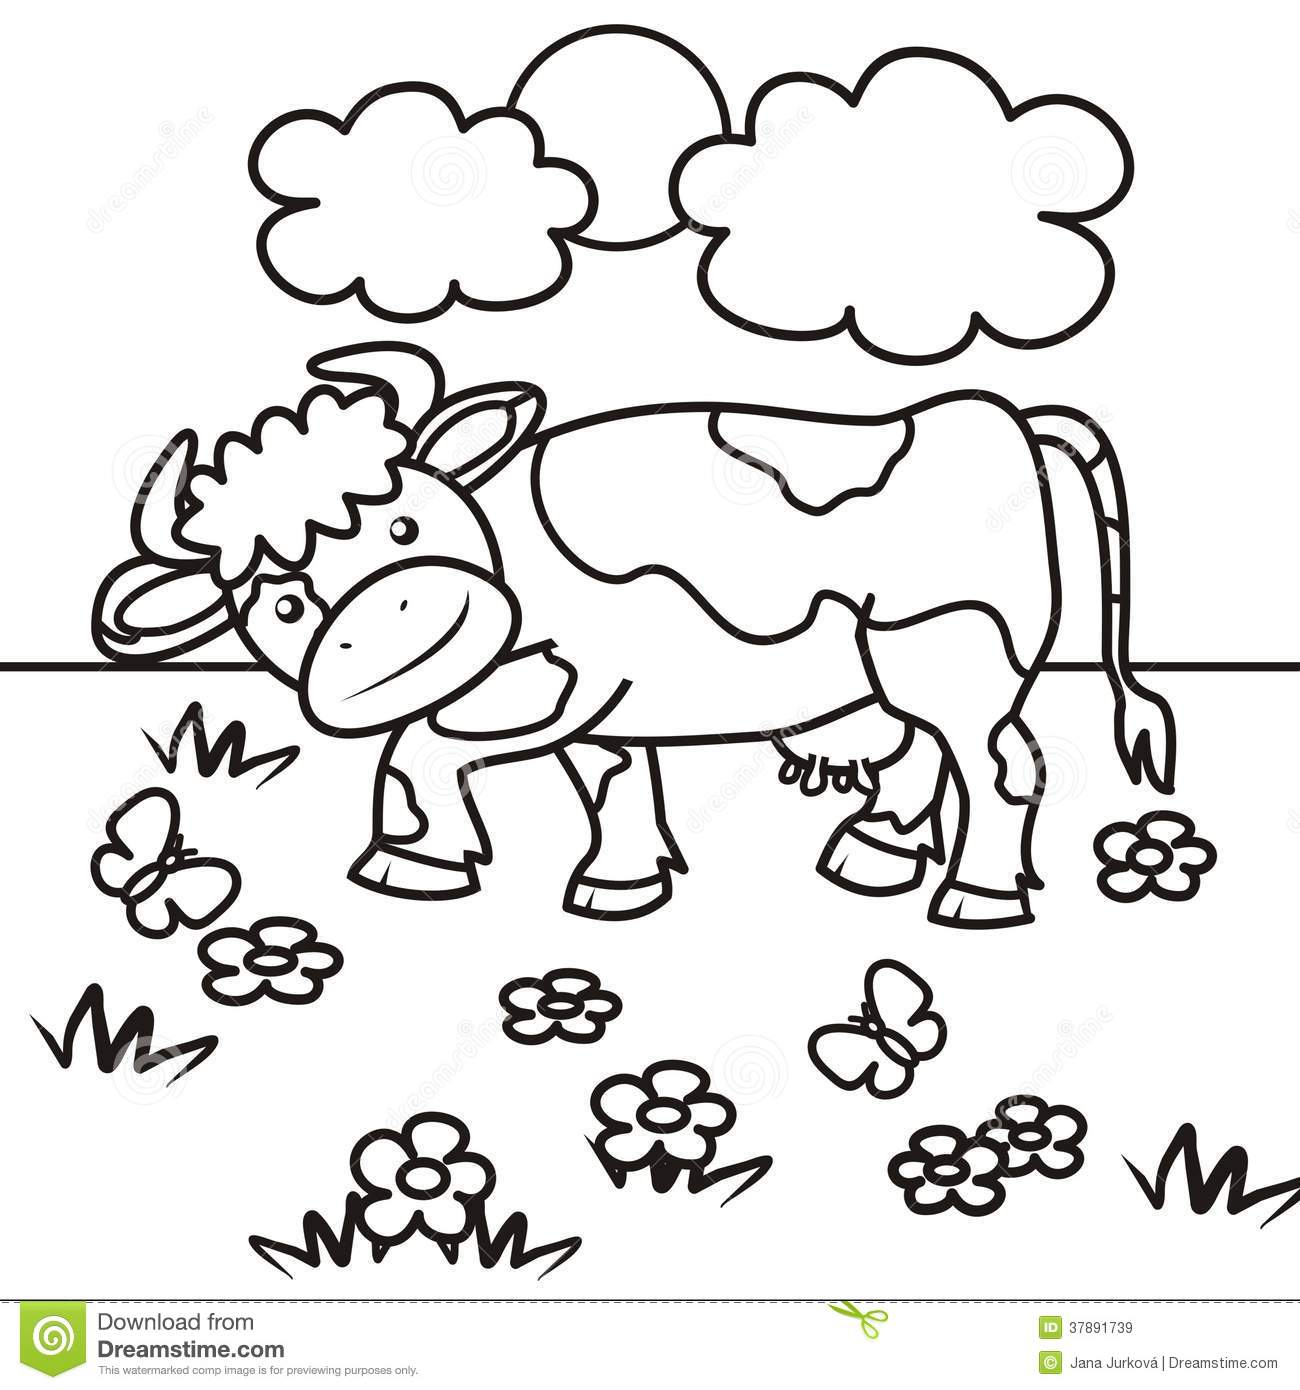 cow coloring book stock vector illustration of butterfly my favorite color is target coloring pages Cow Coloring Page